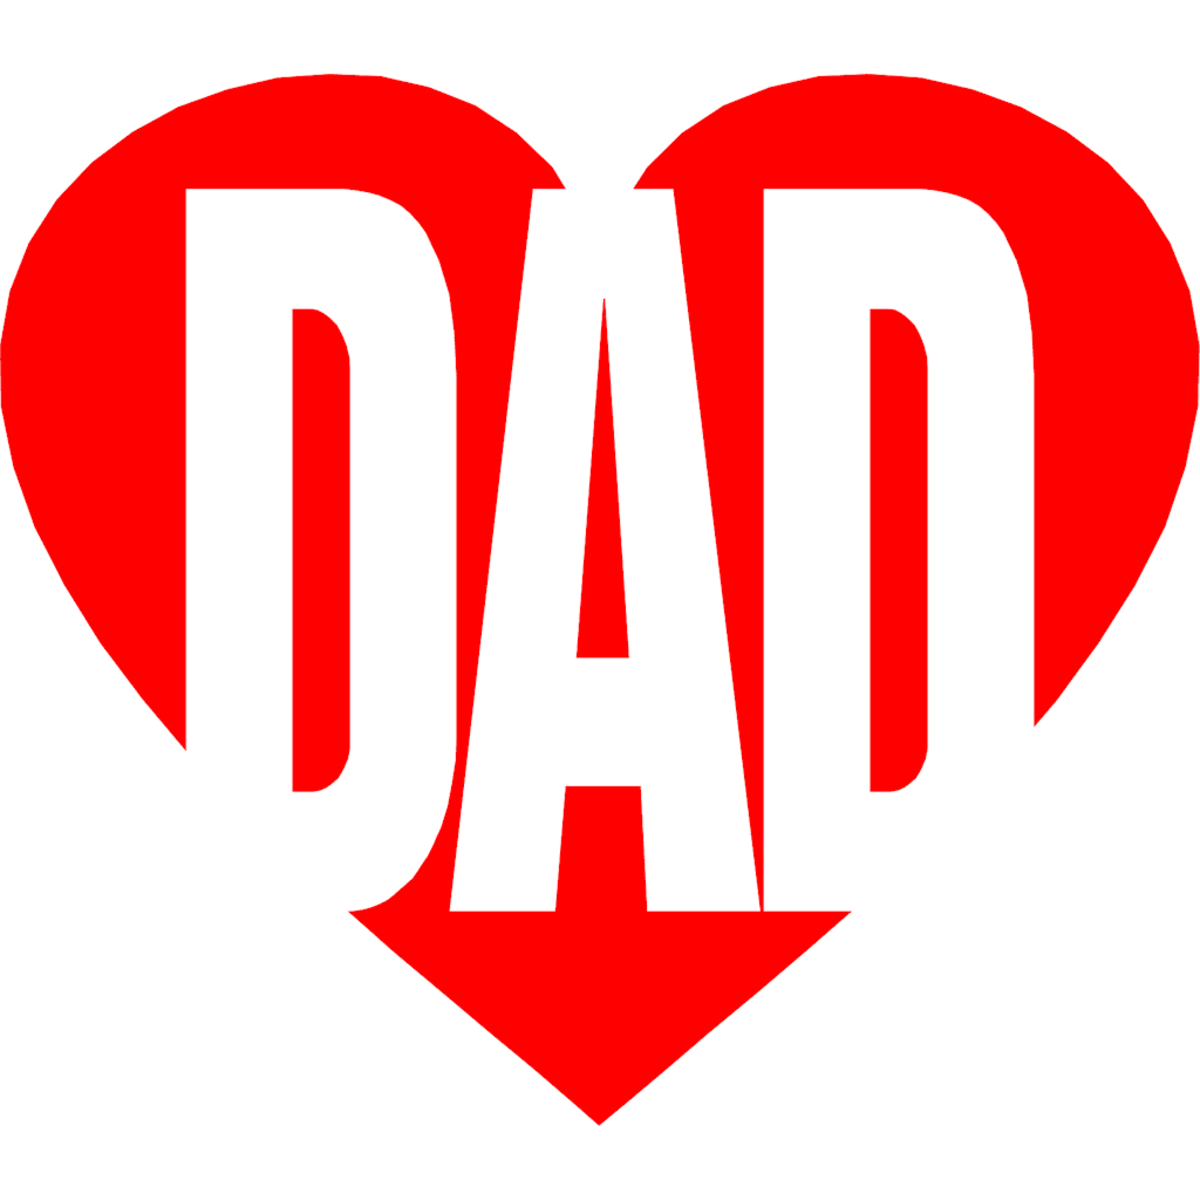 The Word 'Dad' inside Red Heart